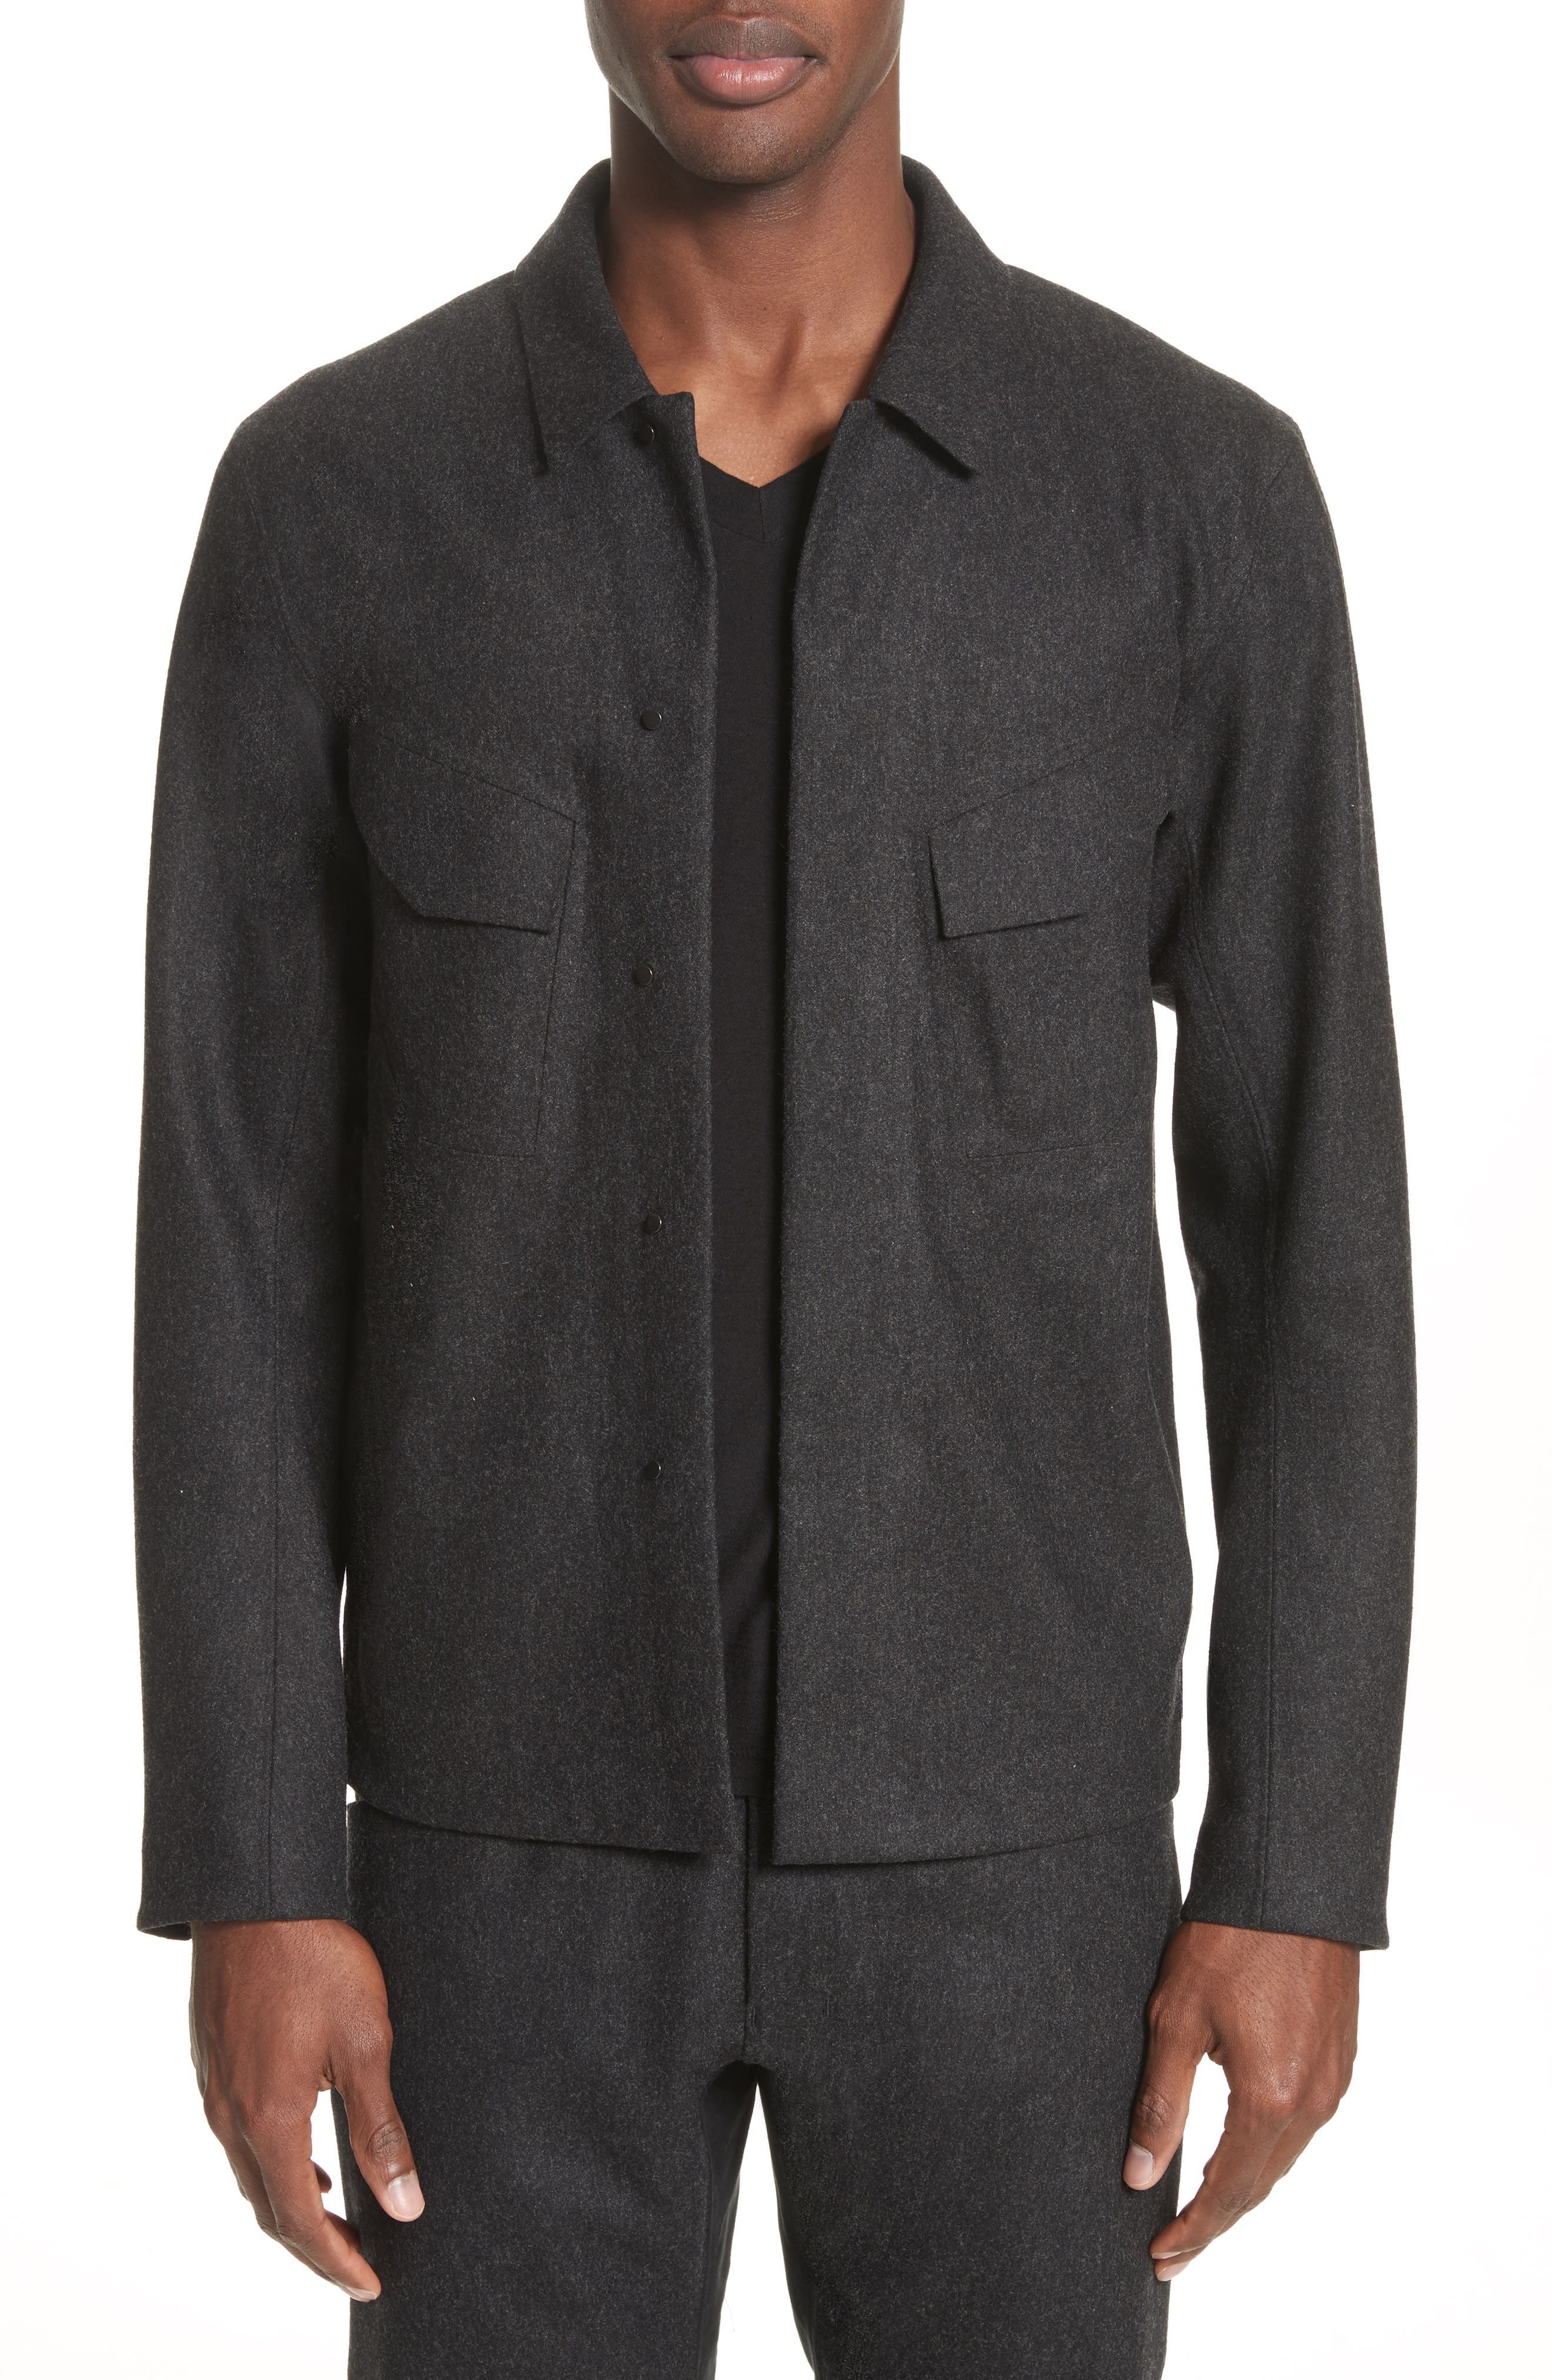 Haedn Shirt Jacket,                             Main thumbnail 1, color,                             Black Heather